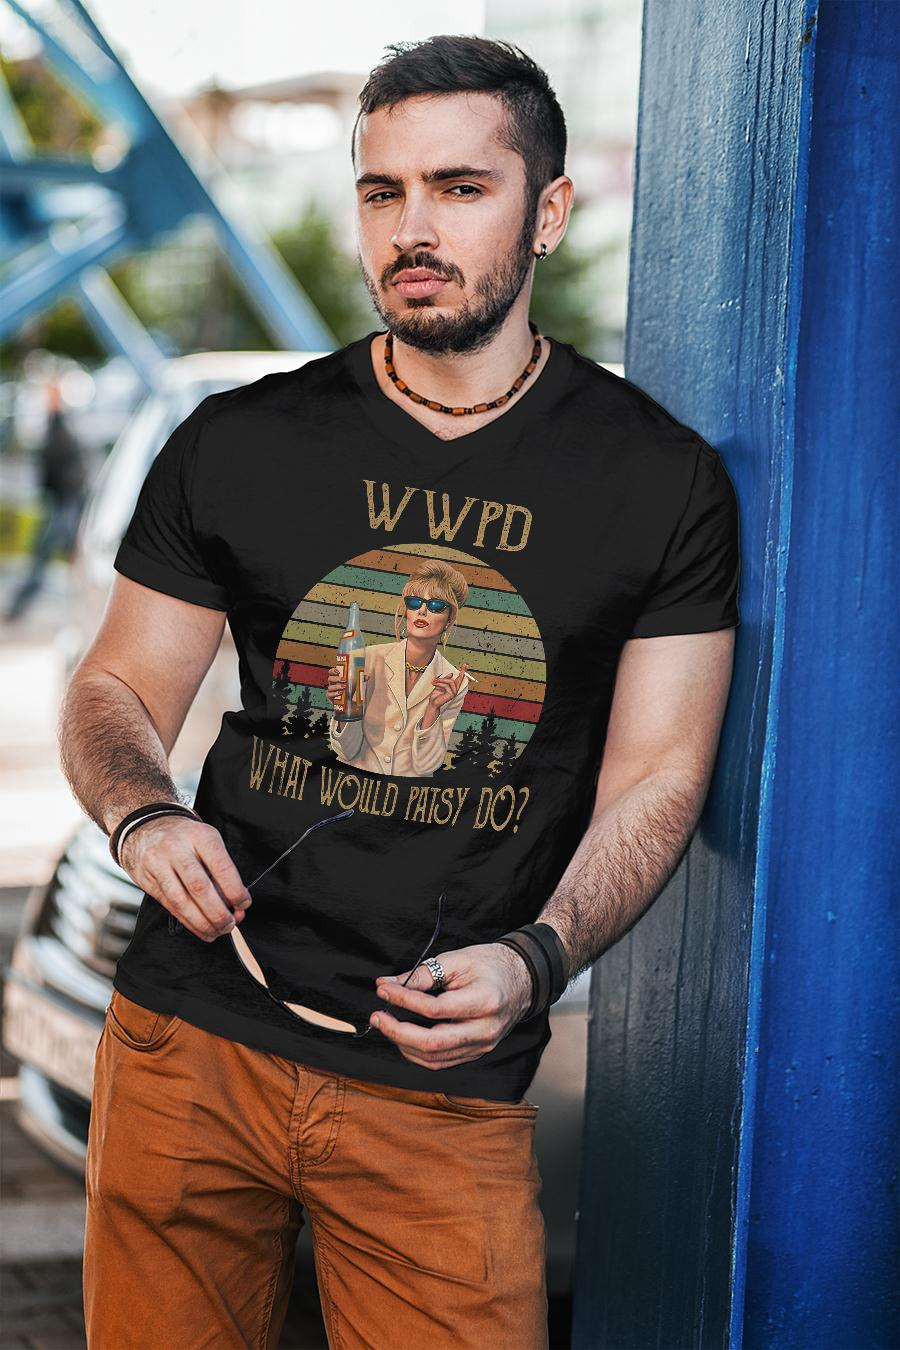 What Would Patsy Do shirt unisex